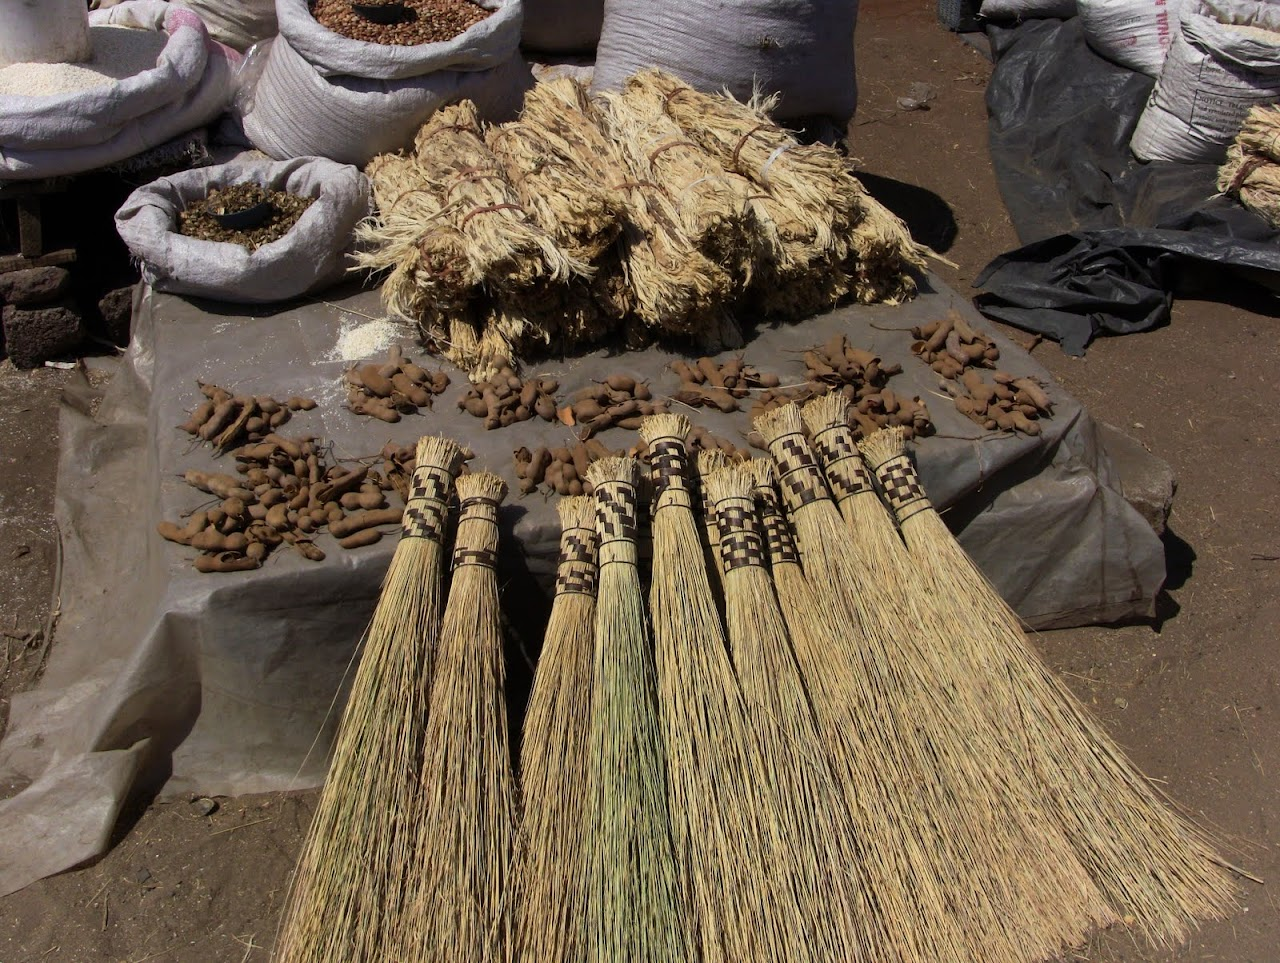 Brooms and tamarind pods